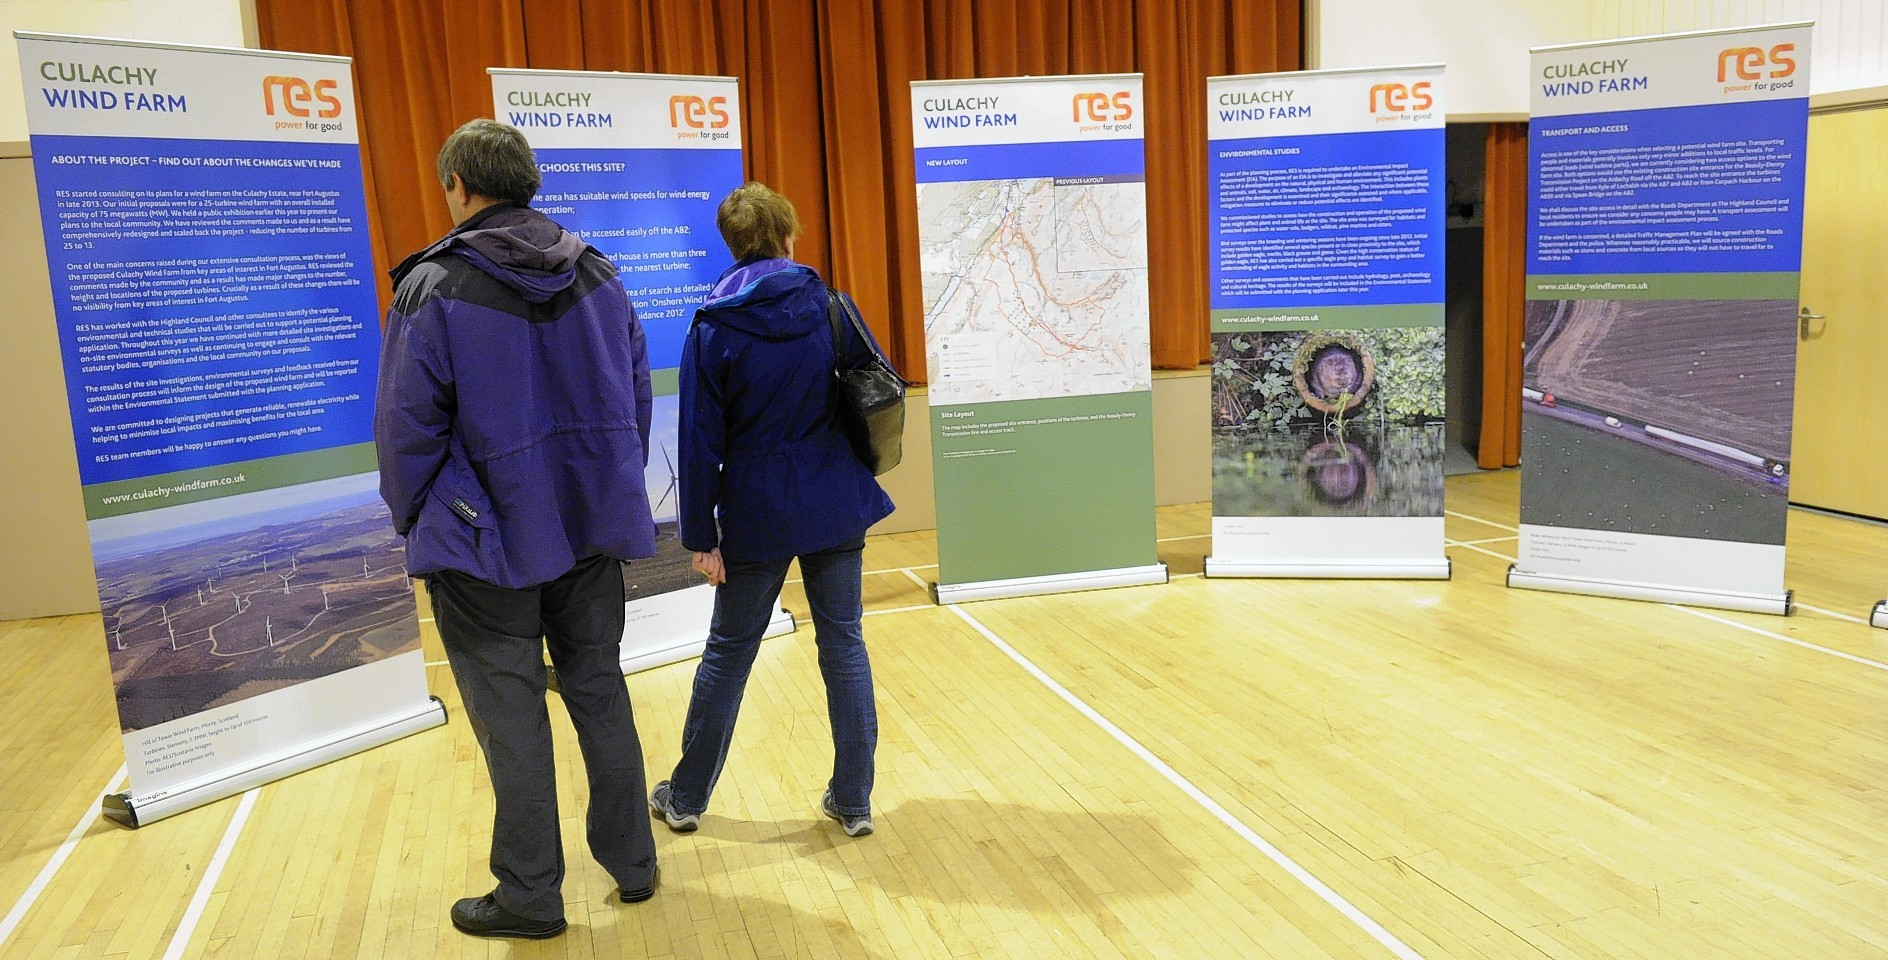 Public exhibitions of the plans